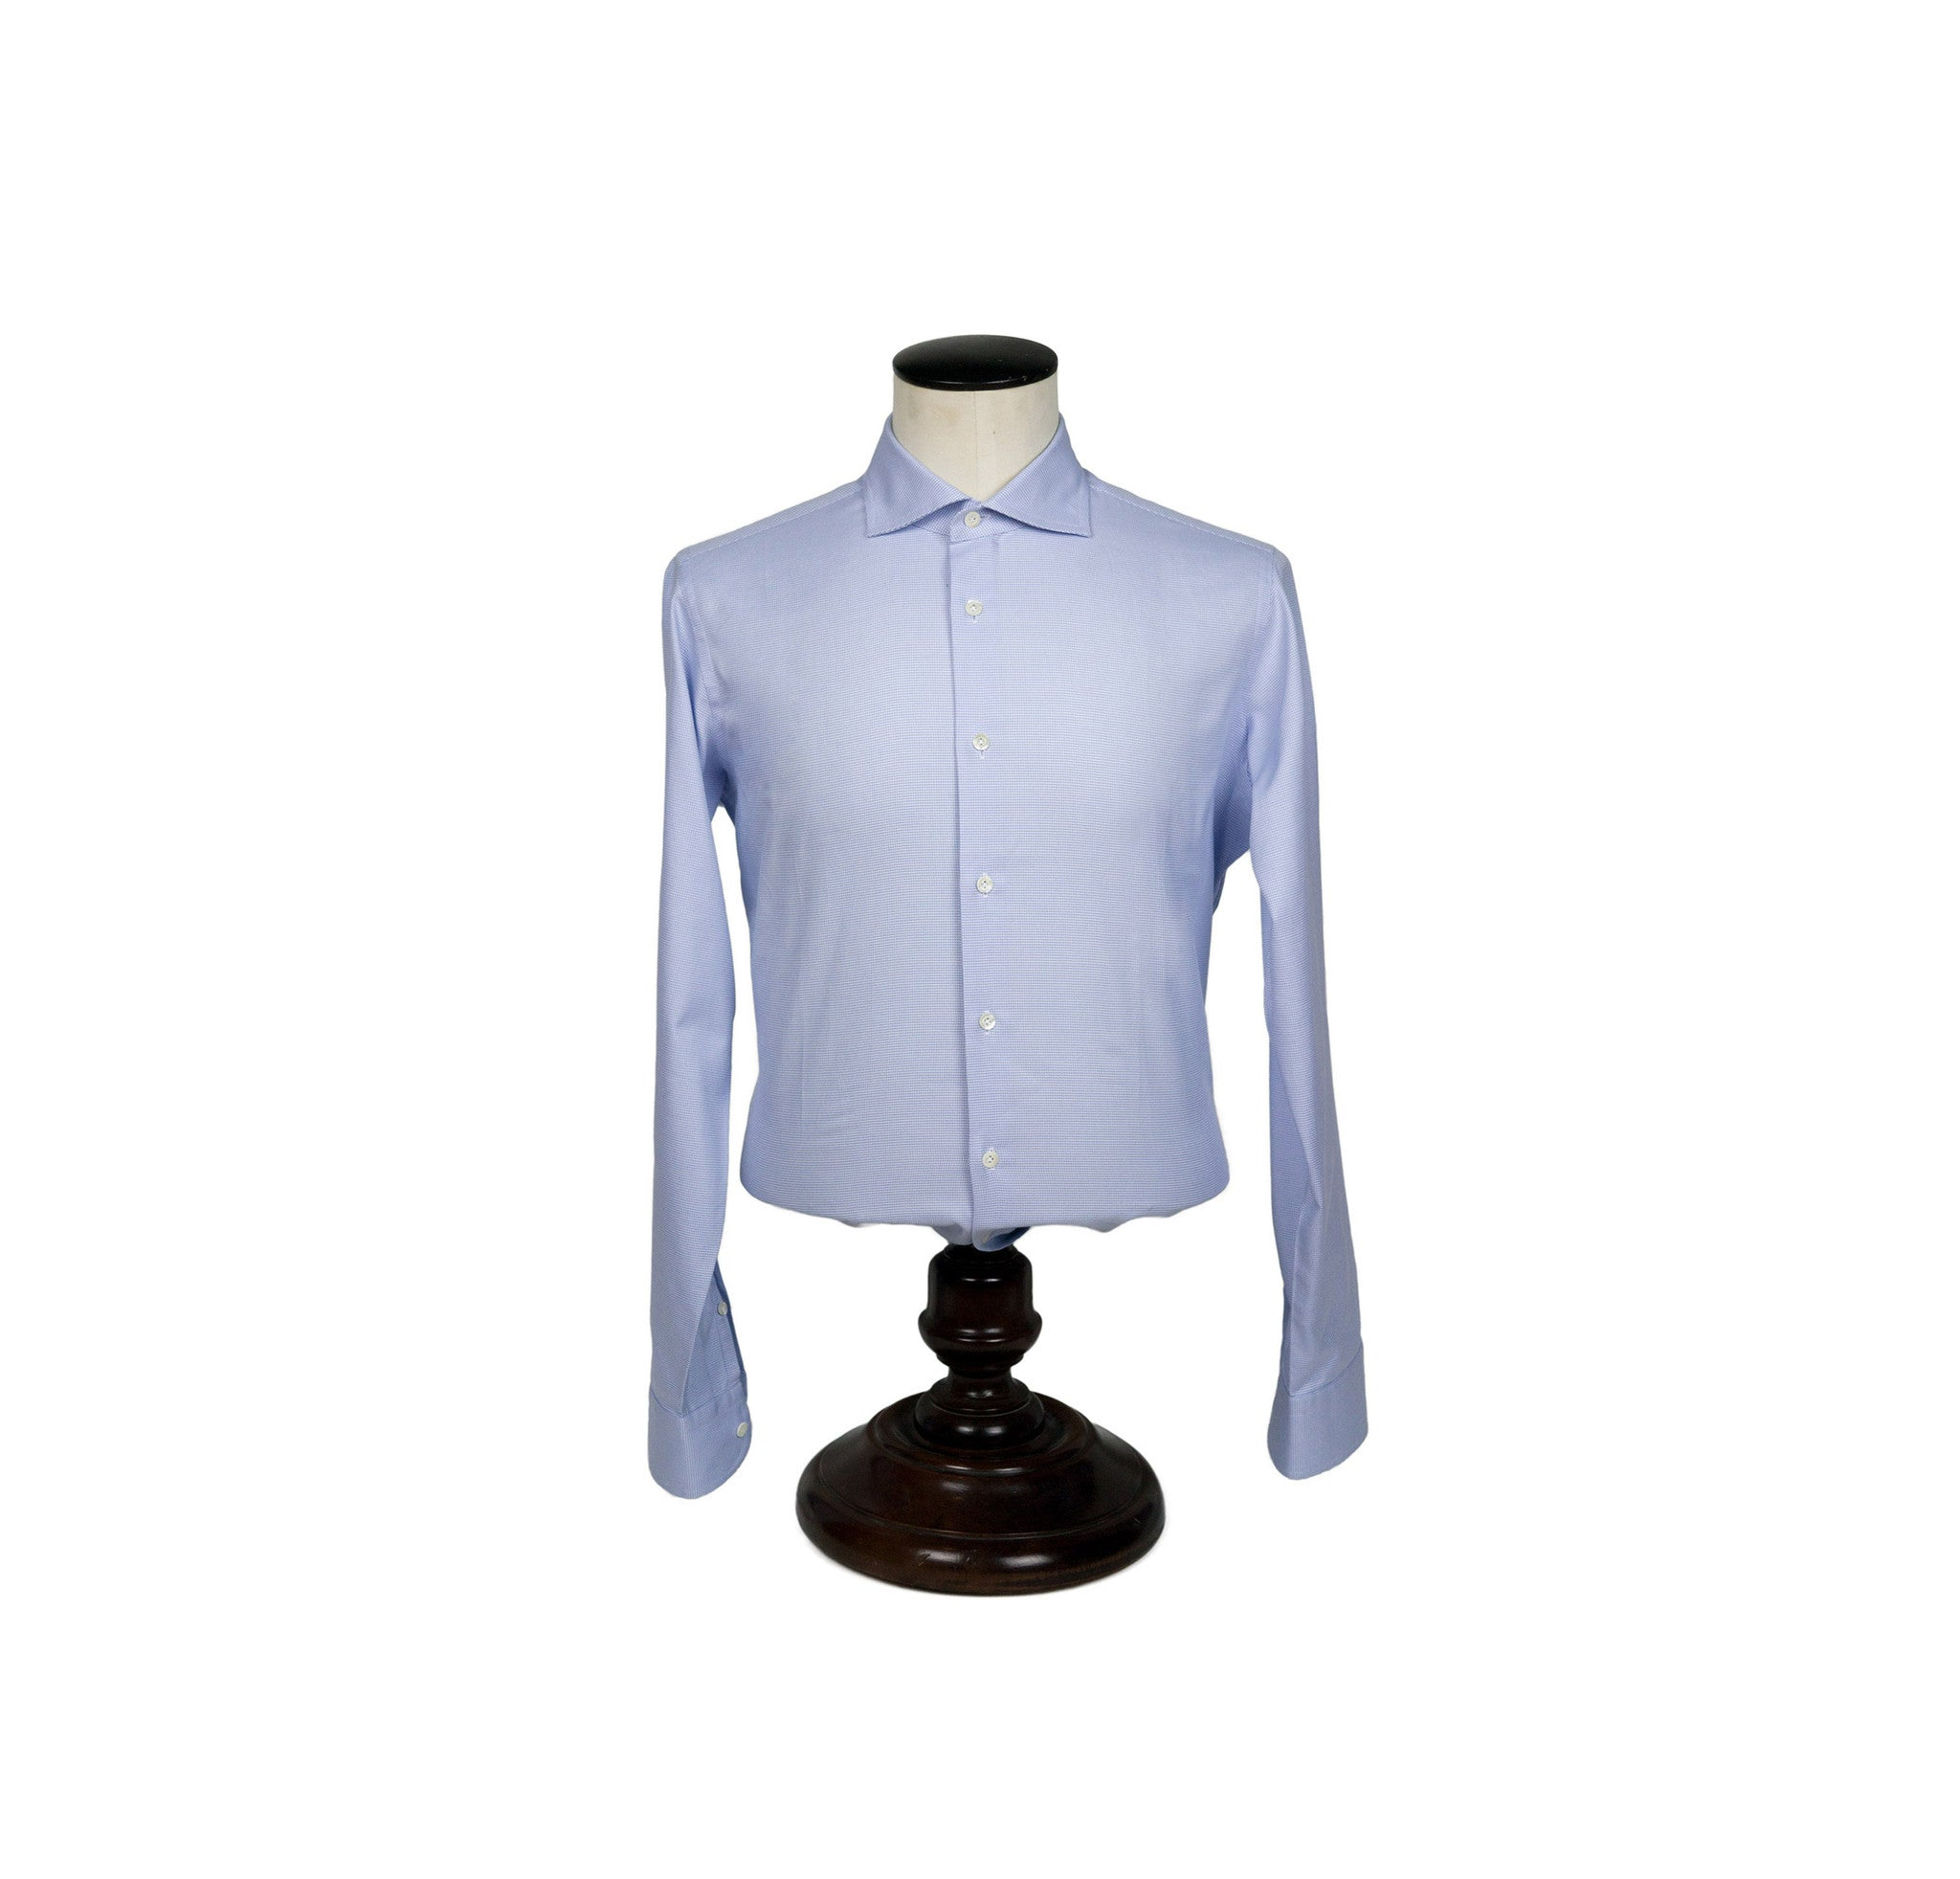 Made to Measure - Shirt   1, 3 or 5